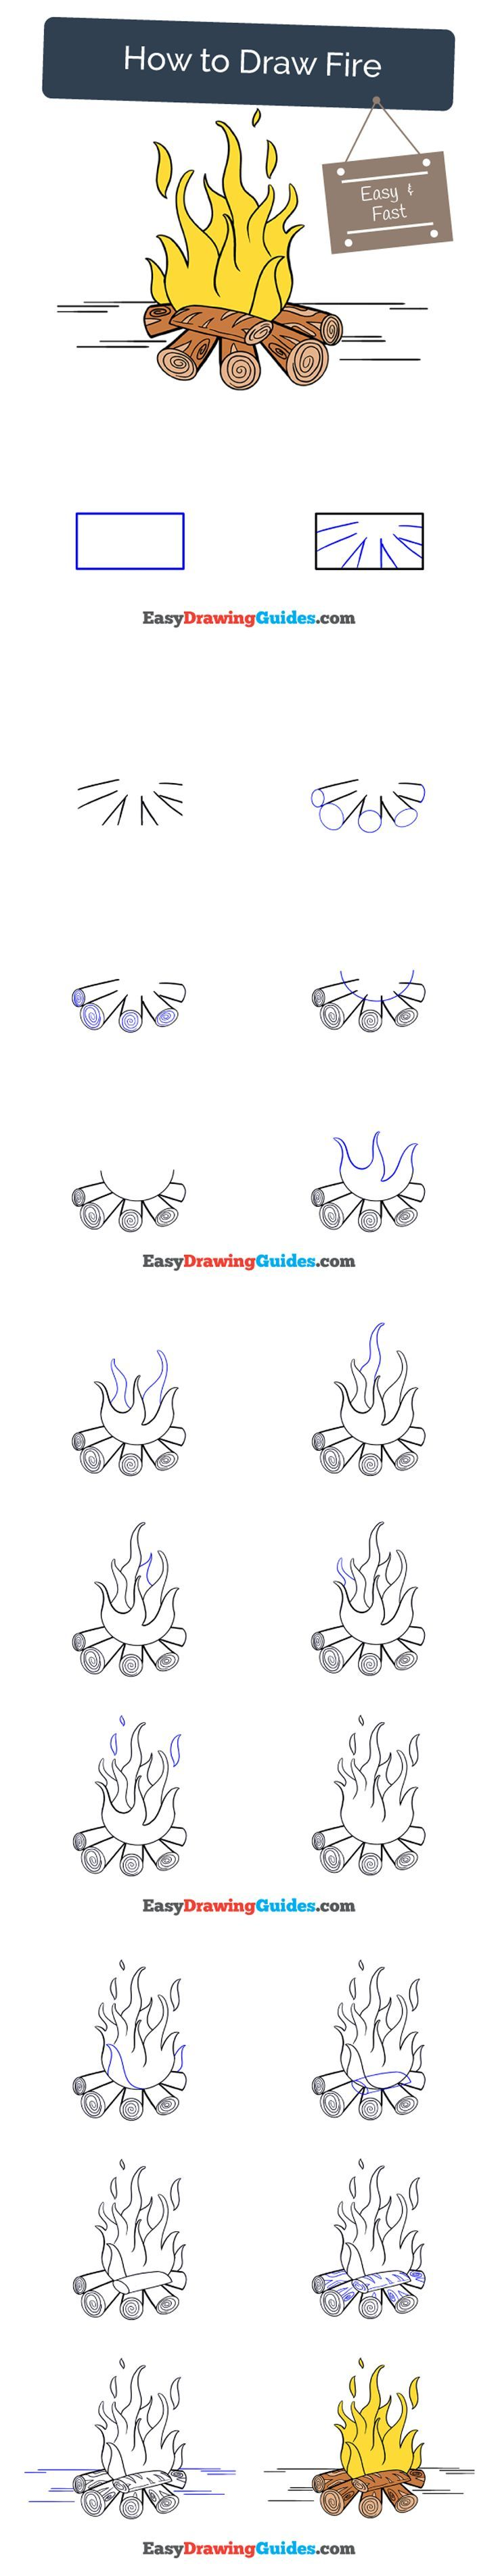 Learn How To Draw A Campfire Easy Step By Drawing Tutorial For Kids And Beginners Fire